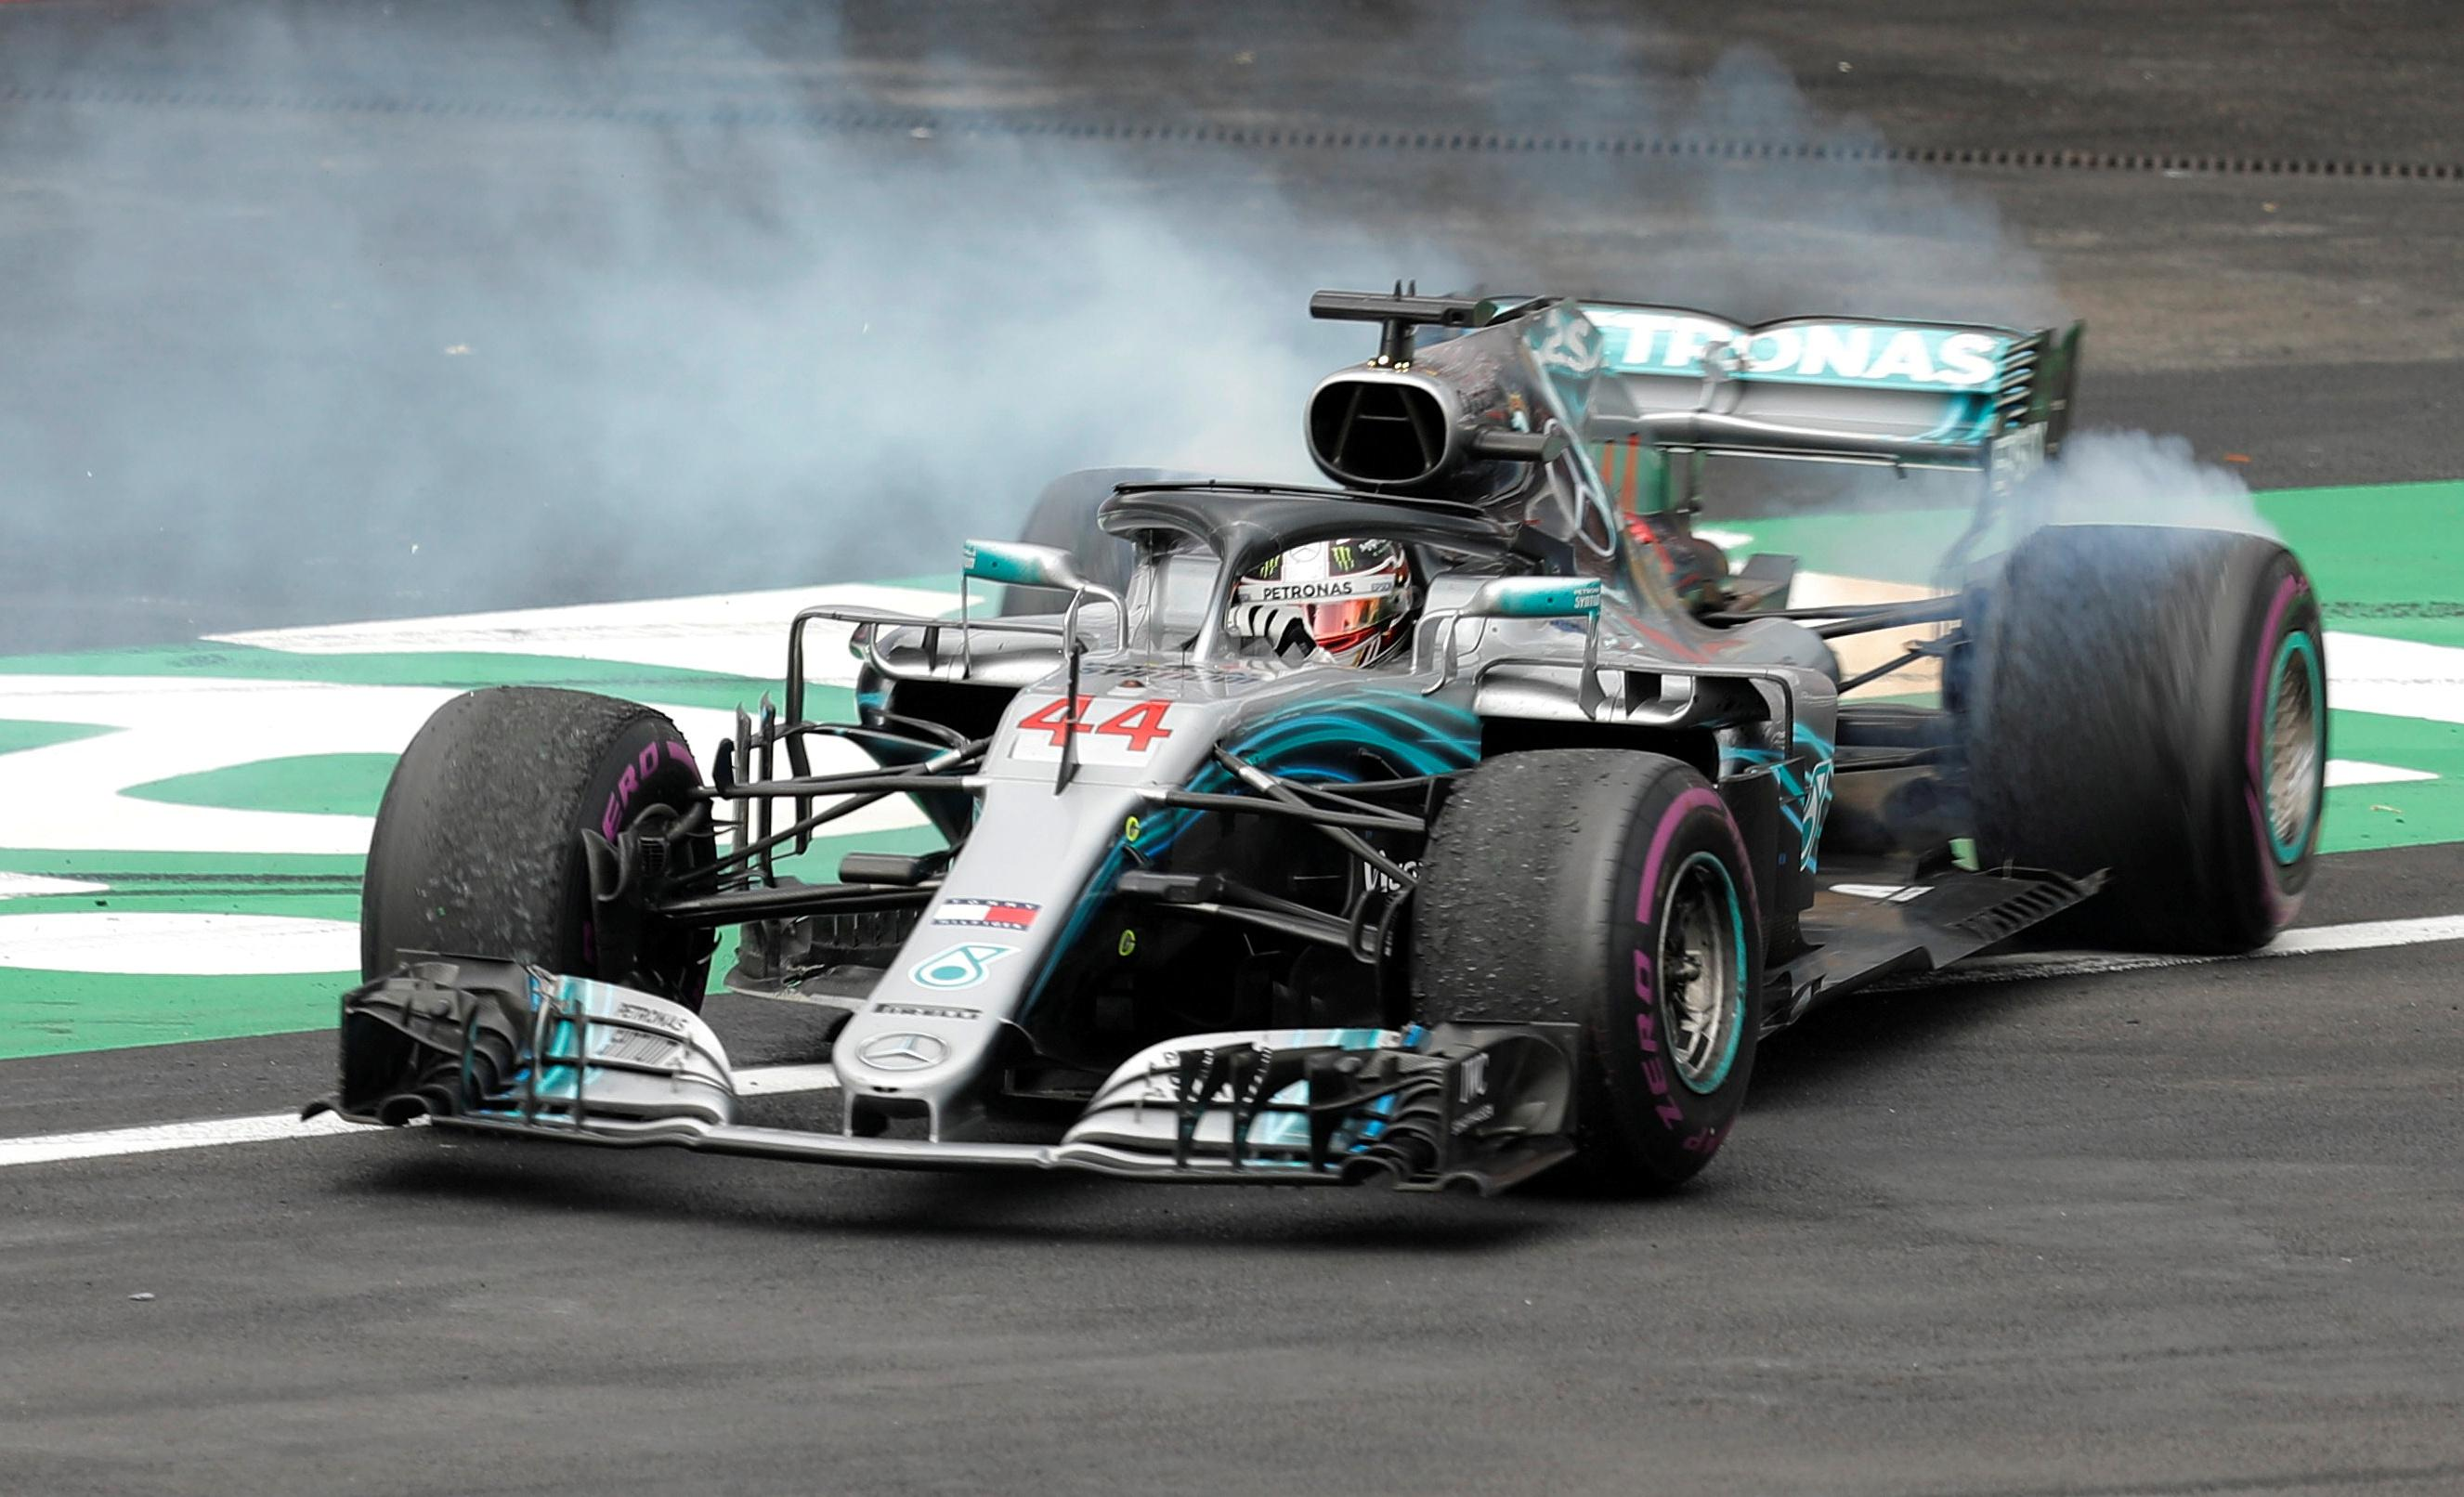 Private donors revive Formula One race in Mexico after government...